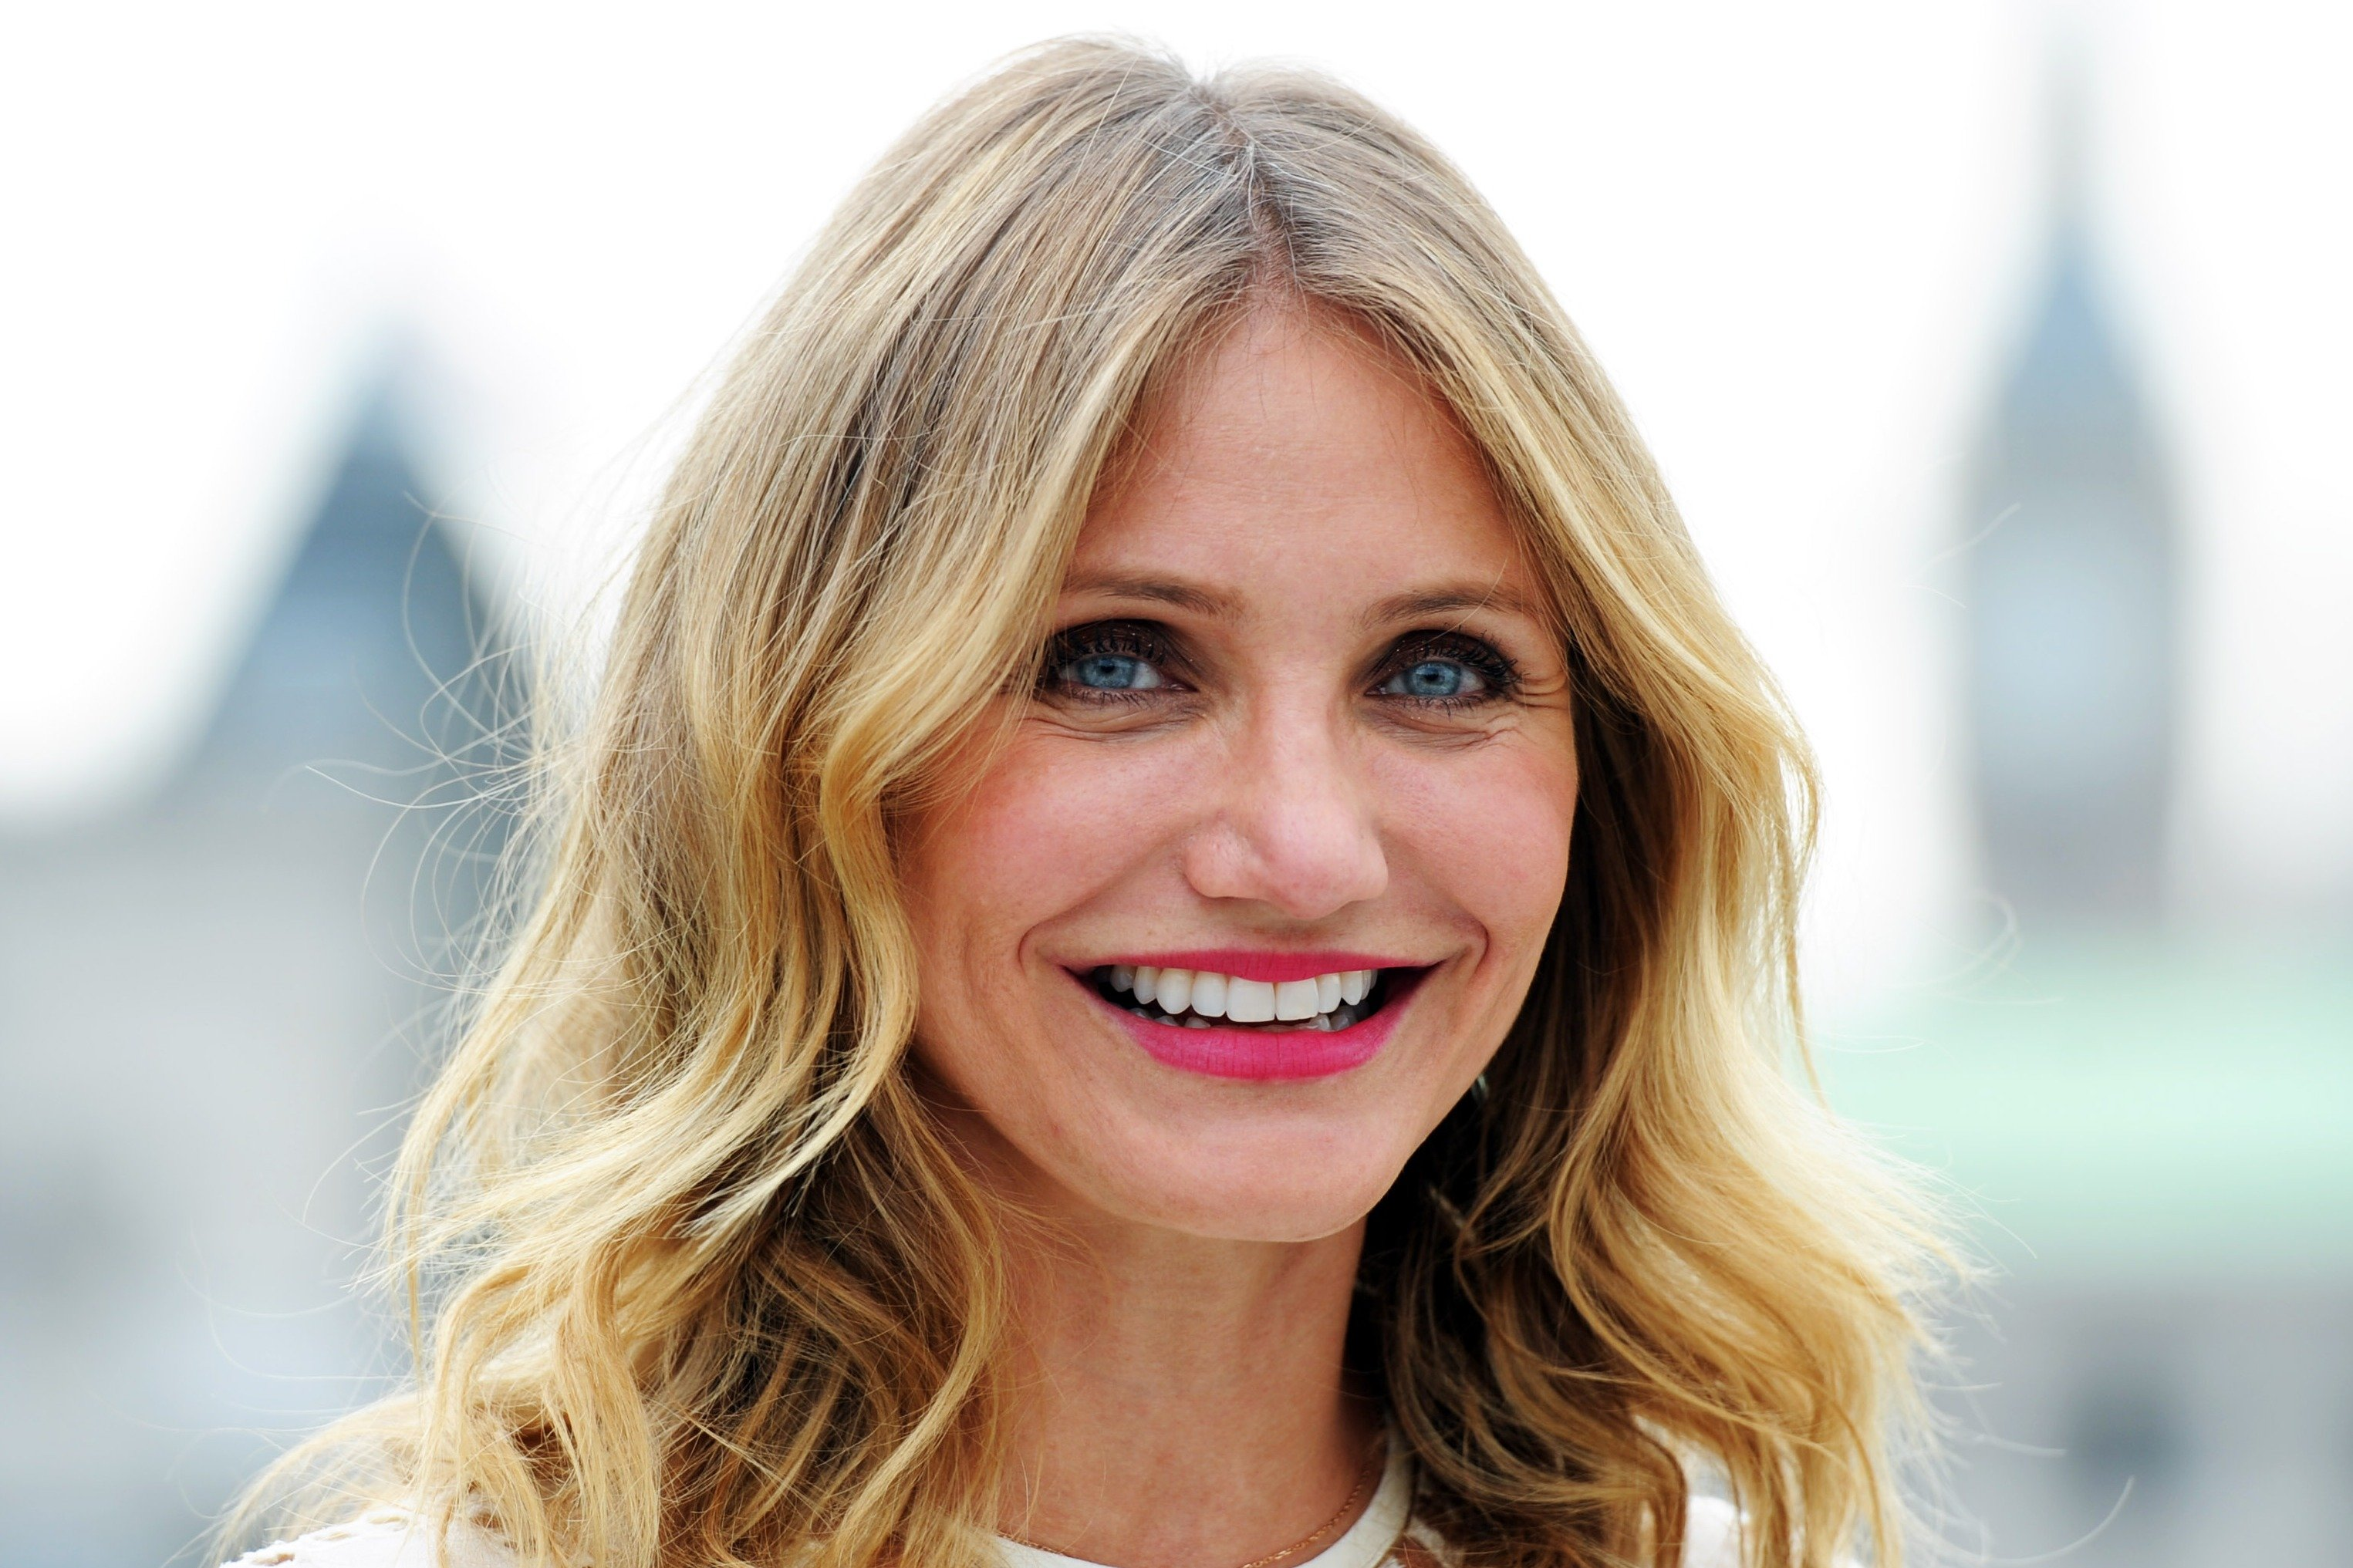 """Image Credit: Getty Images/Stuart C. Wilson  : Cameron Diaz attends a photocall for her movie """"Sex Tape"""""""